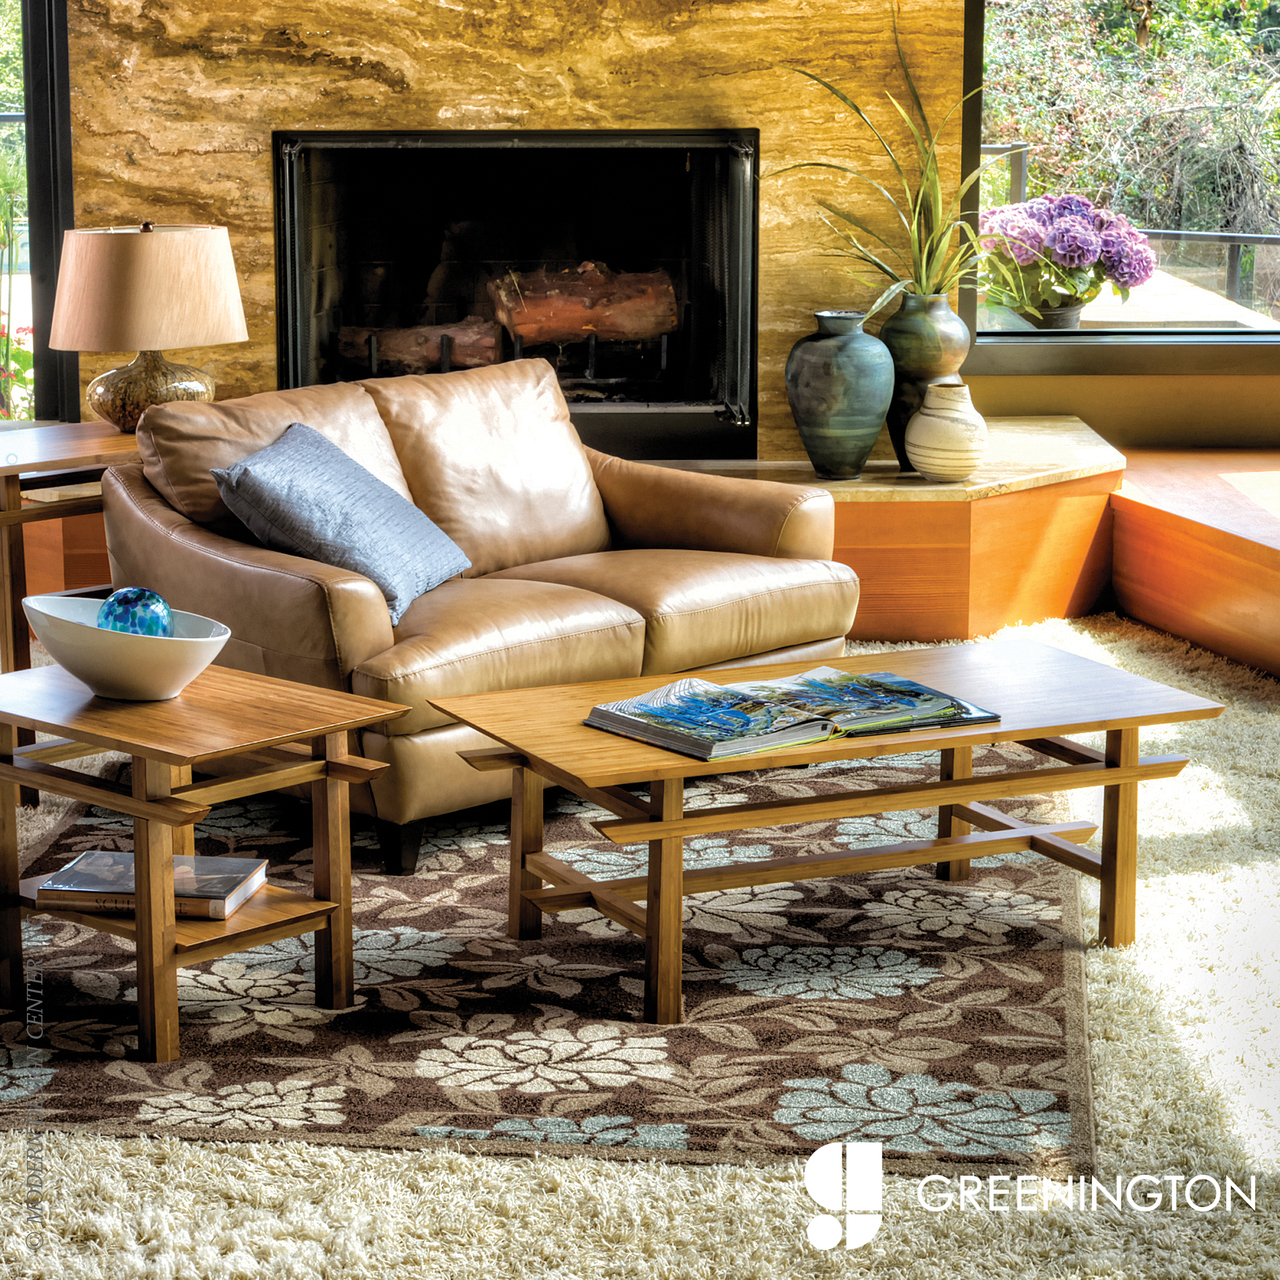 Lotus Coffee Table | Greenington